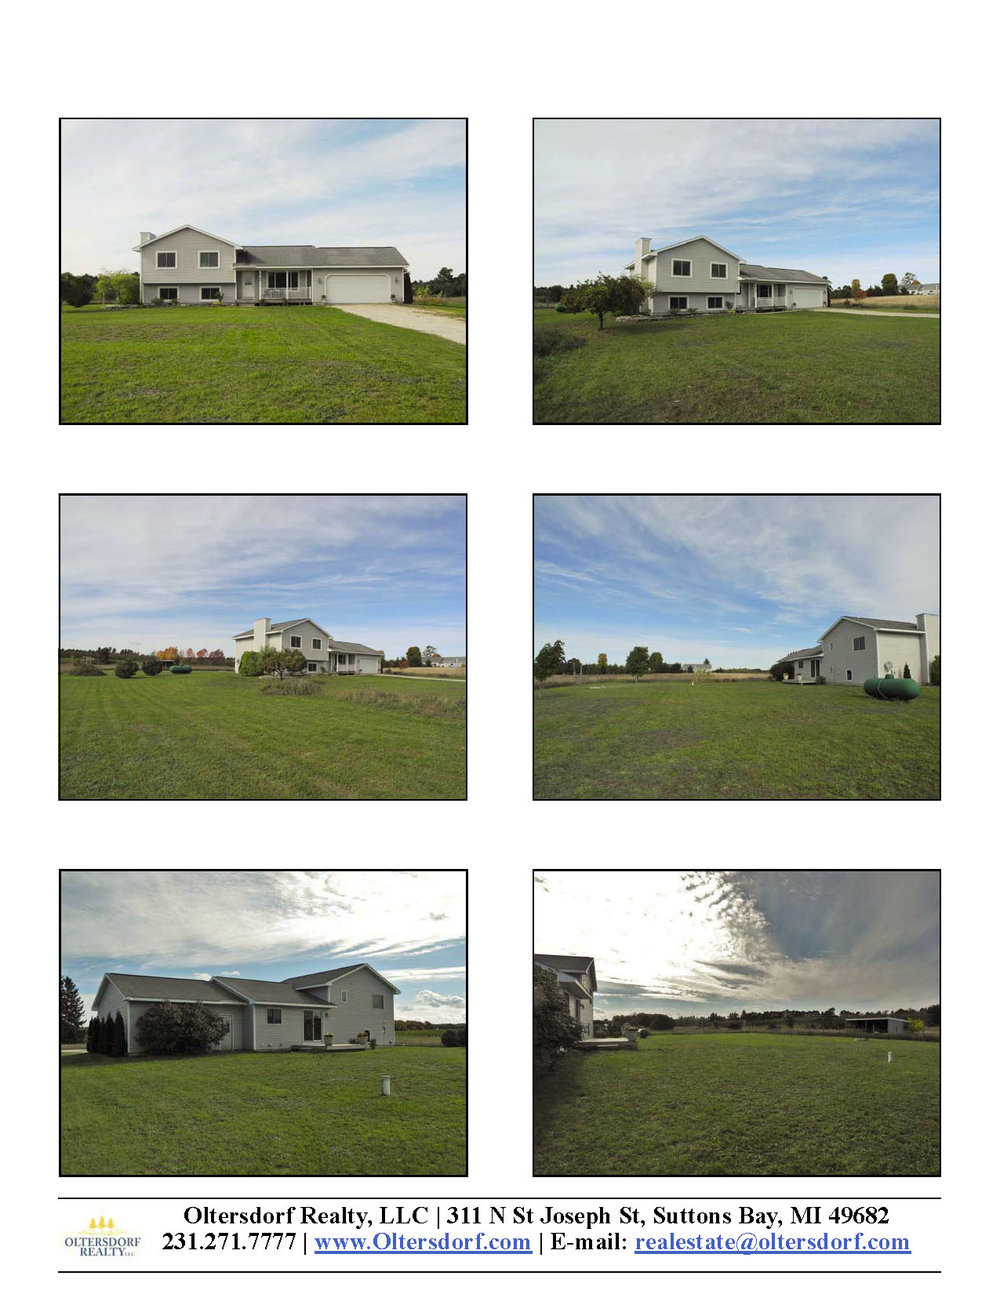 6100 S Grapevine Trail, Suttons Bay, Leelanau County Home for sale by Oltersdorf Realty LLC - Marketing Packet (2).jpg